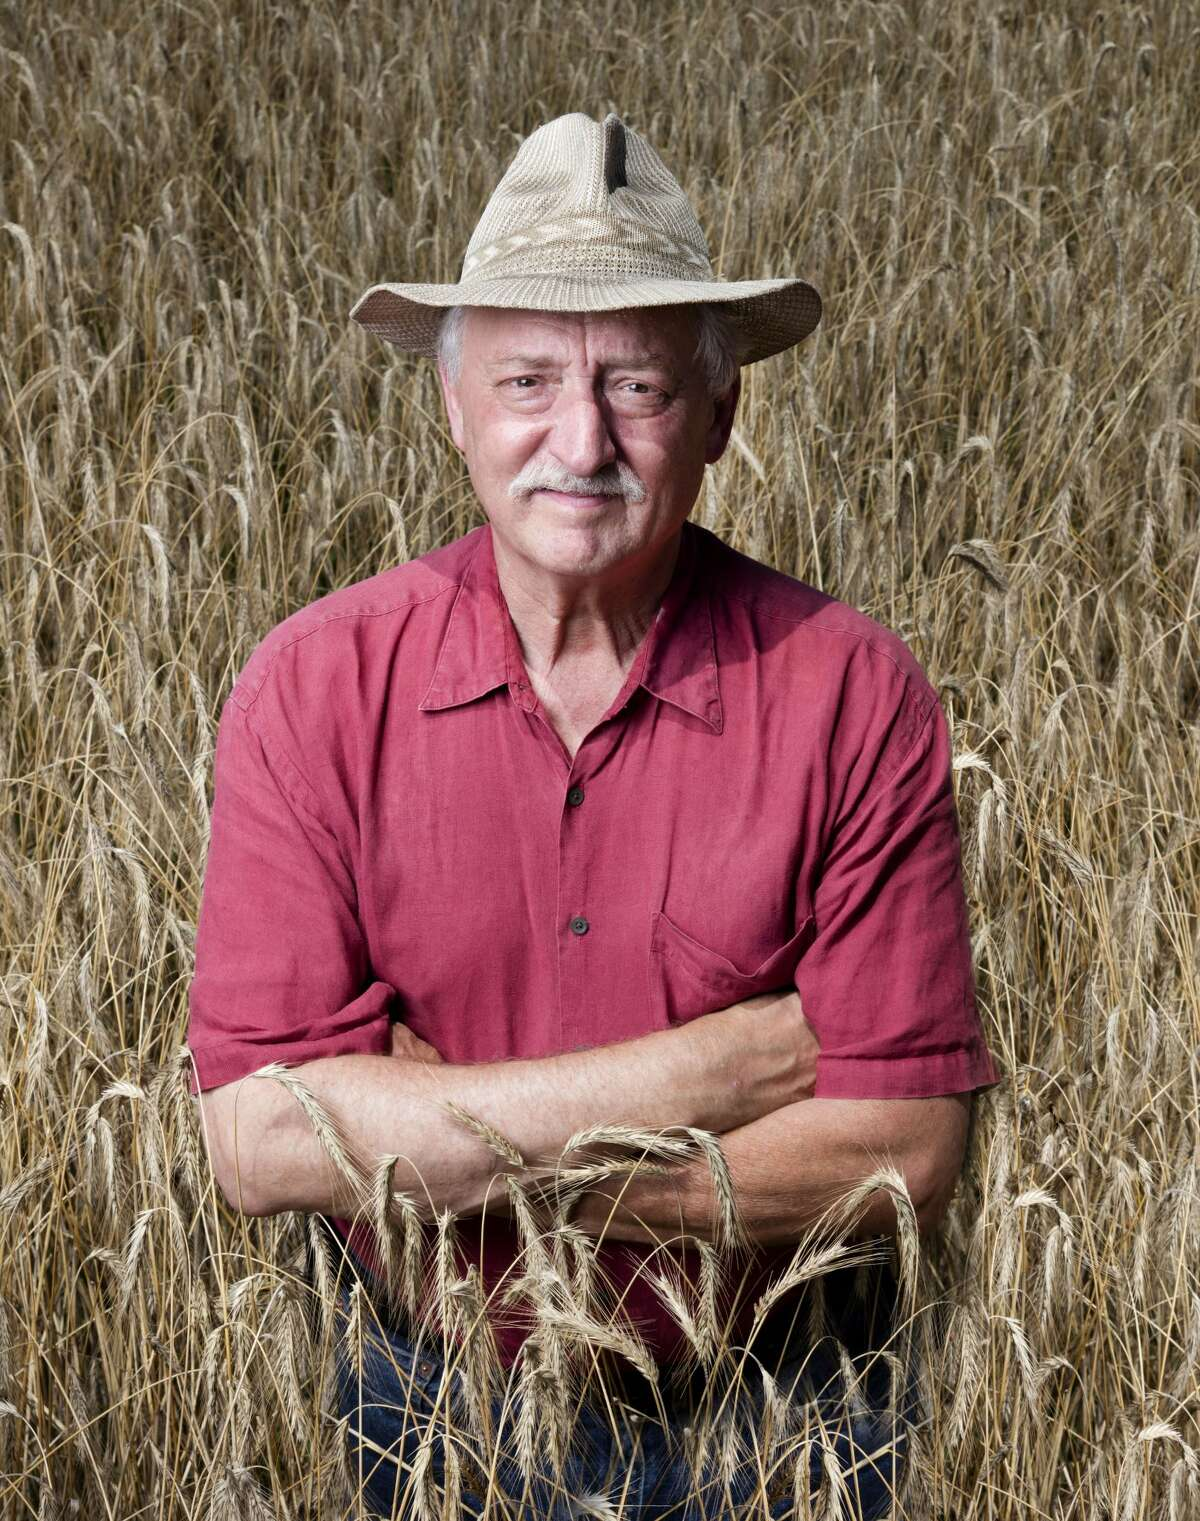 Don Lewis, founder of Wild Hive Farm and pictured above, saw the potential for producing and milling grains for human consumption, which switched his path in the food world from baking to milling full time.